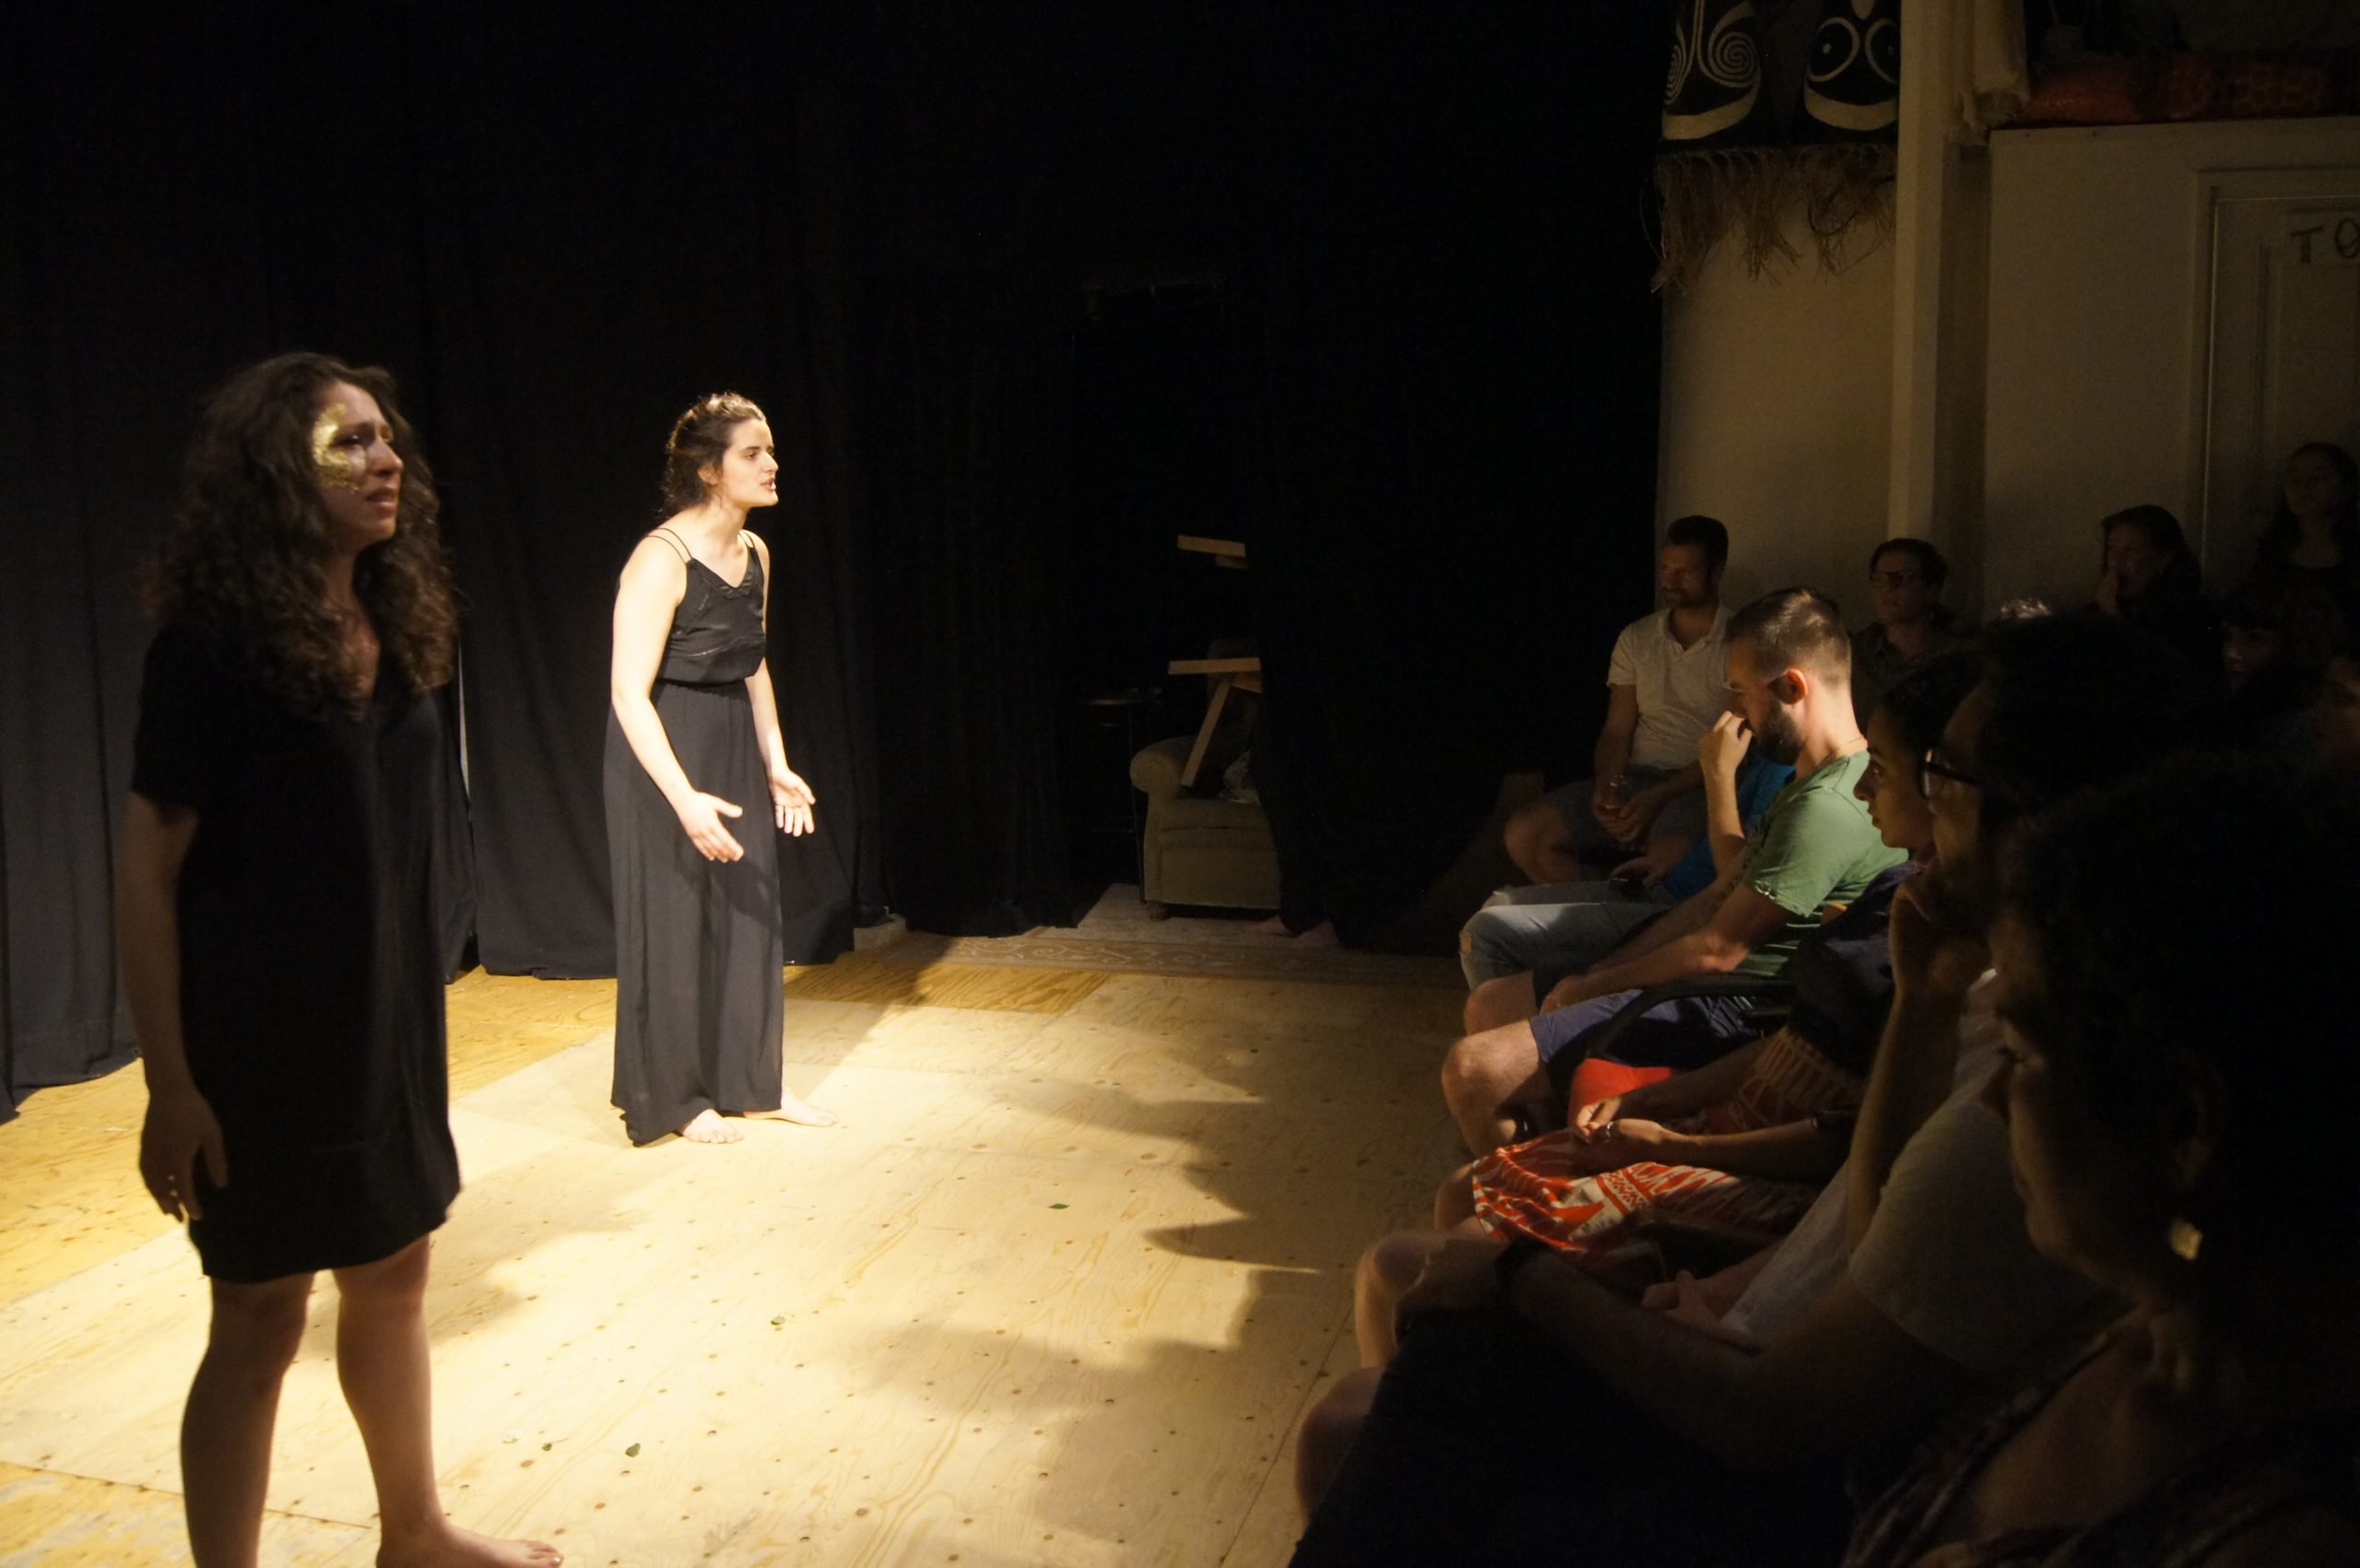 Theatre performance, two women on stage with black dresses, standing in front of audience. They are crying while speaking.